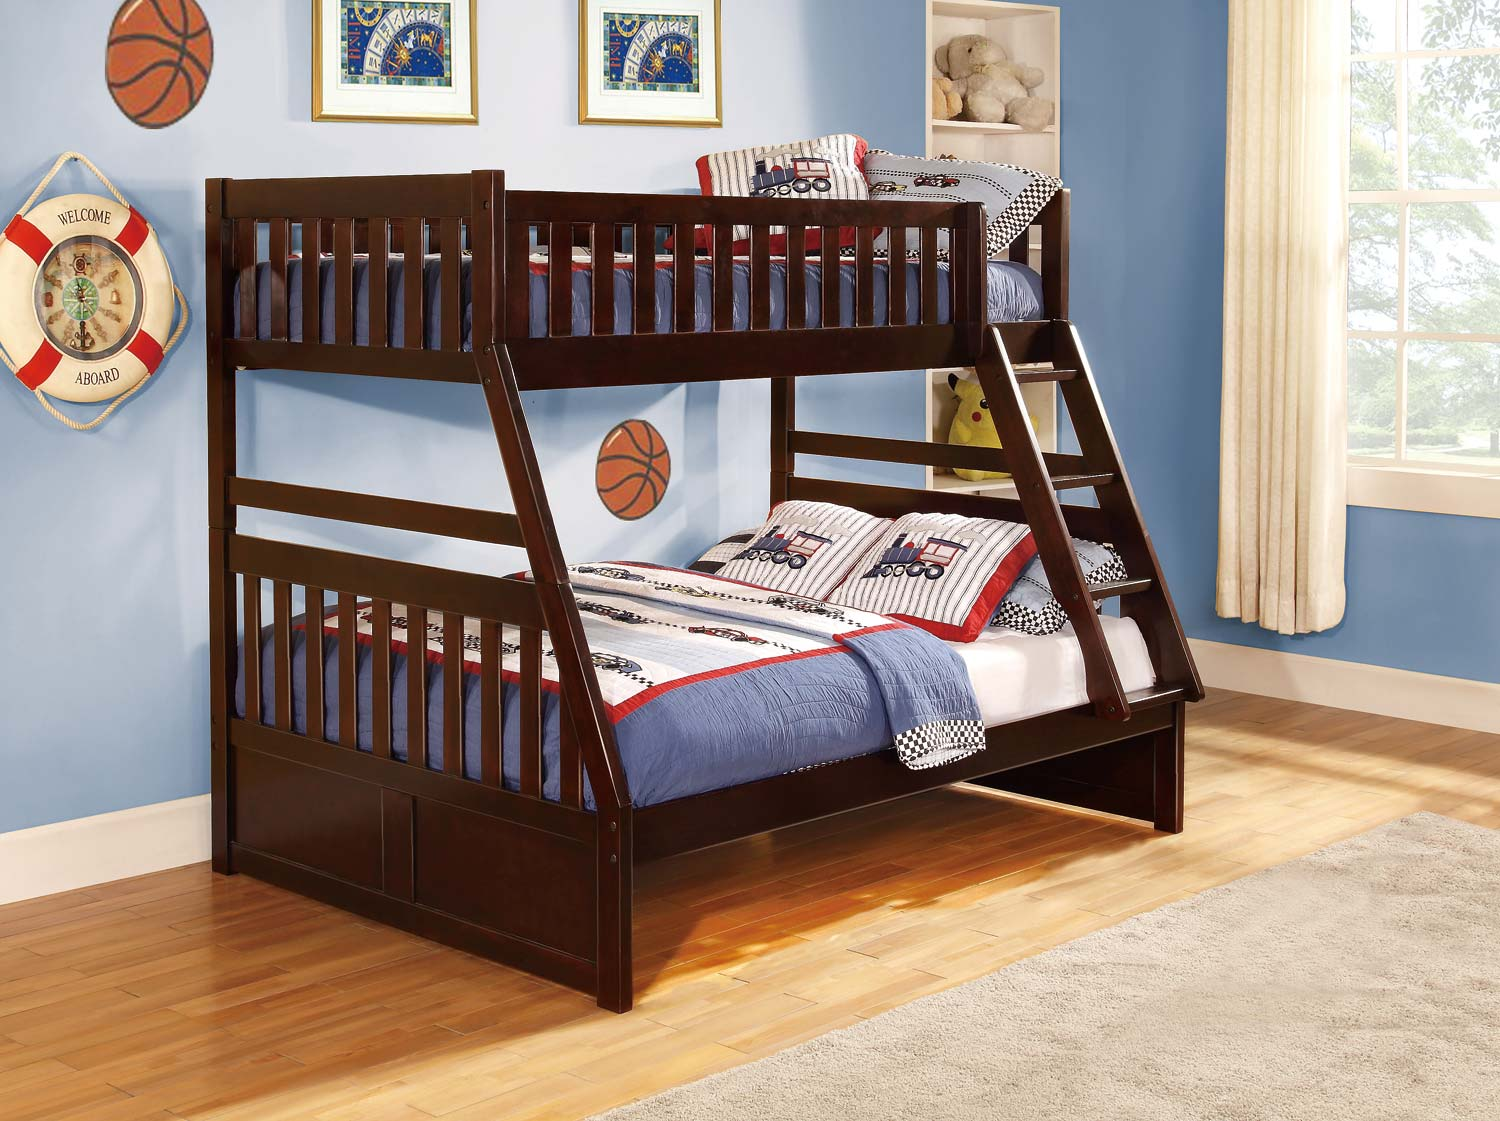 Best Furniture Products By J&j Furniture: Jcpenney Furniture | Ashley Furniture Credit Card | J&j Furniture